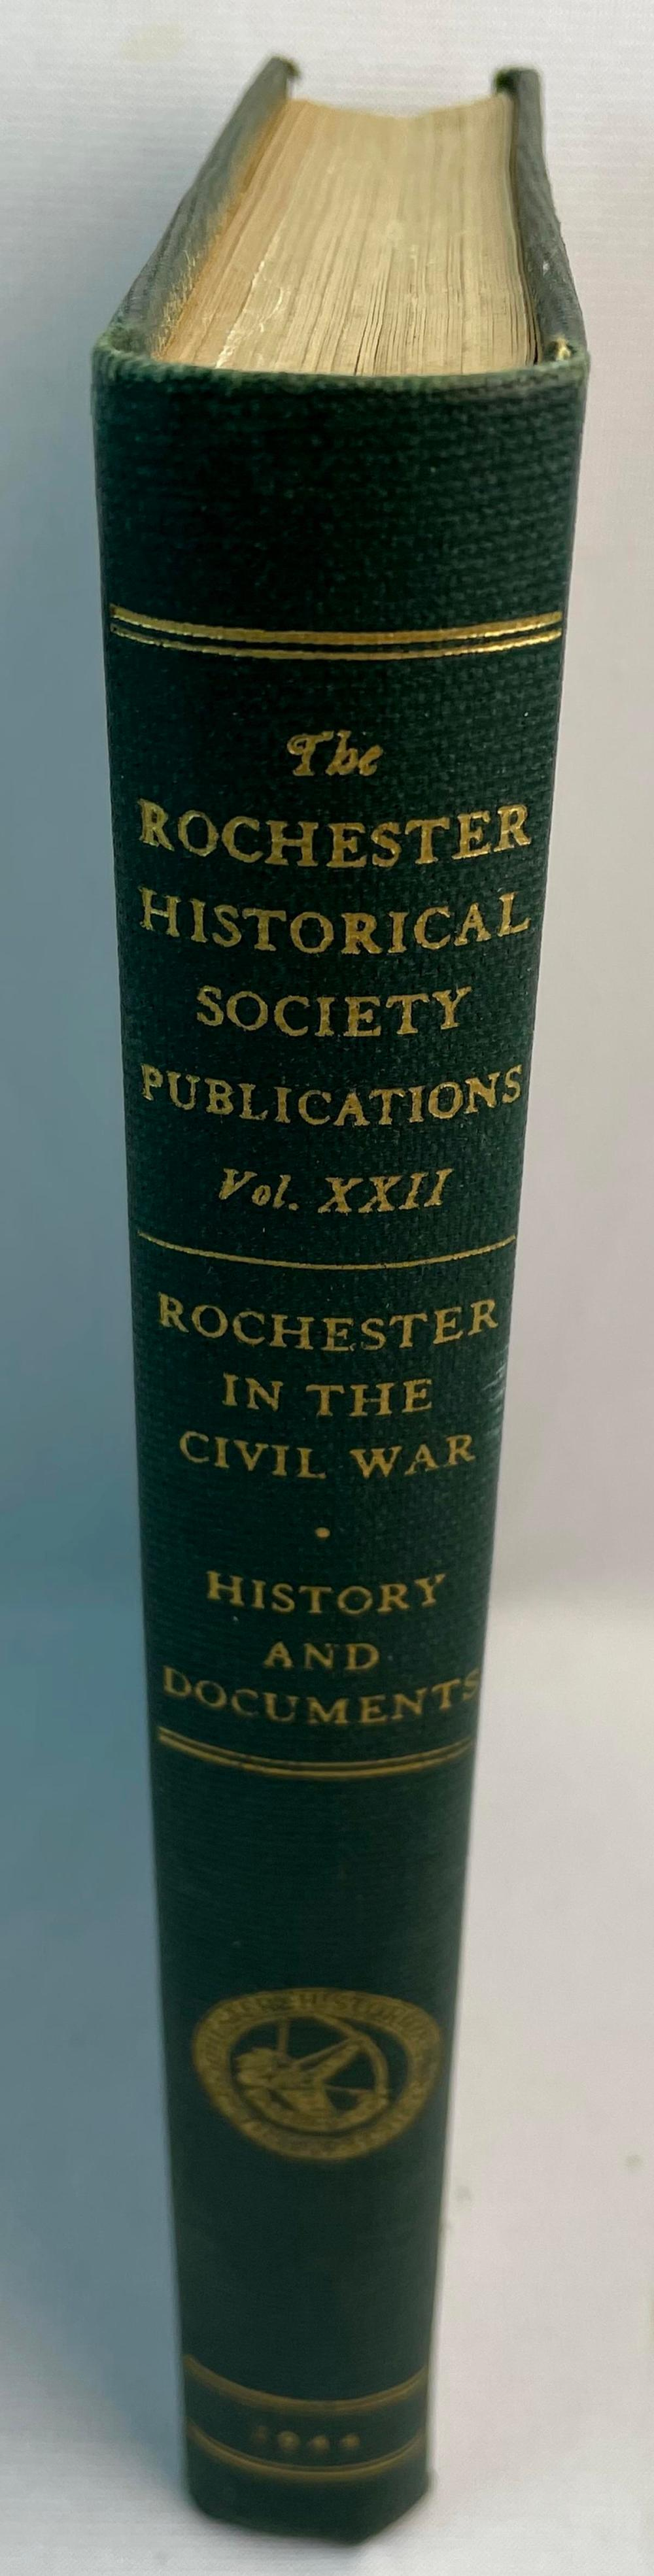 1944 Rochester In the Civil War by Blake McKelvey Illustrated FIRST EDITION